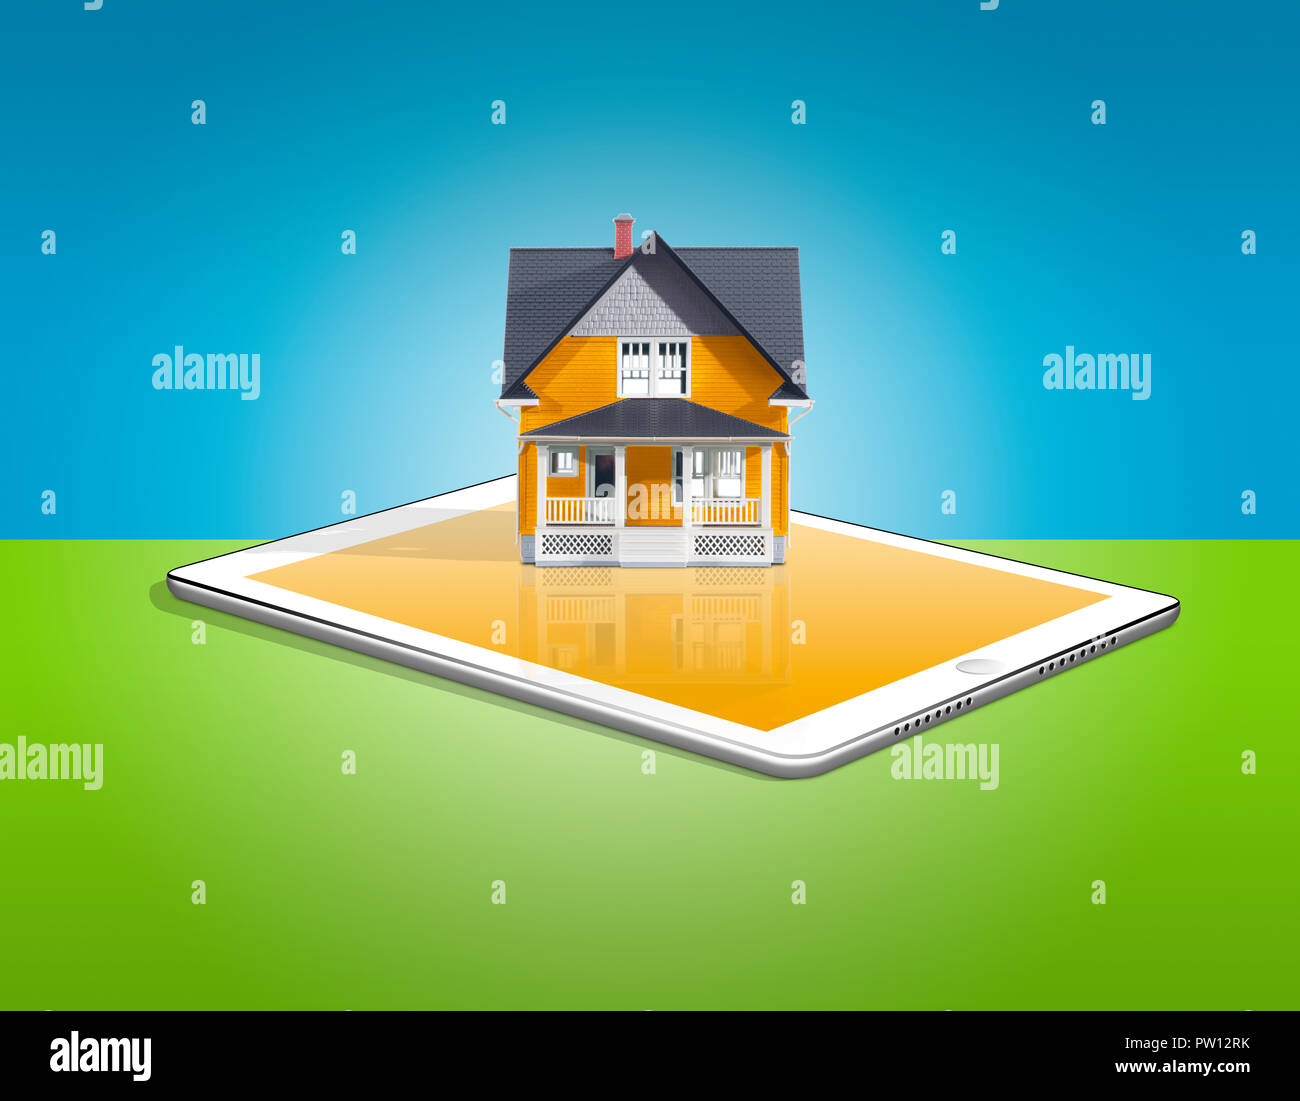 Concept A Orange House on top a Tablet, House Finding, Real Estate, House Search, Selling House, Financial, Mortgage, Apple iPad - Stock Image